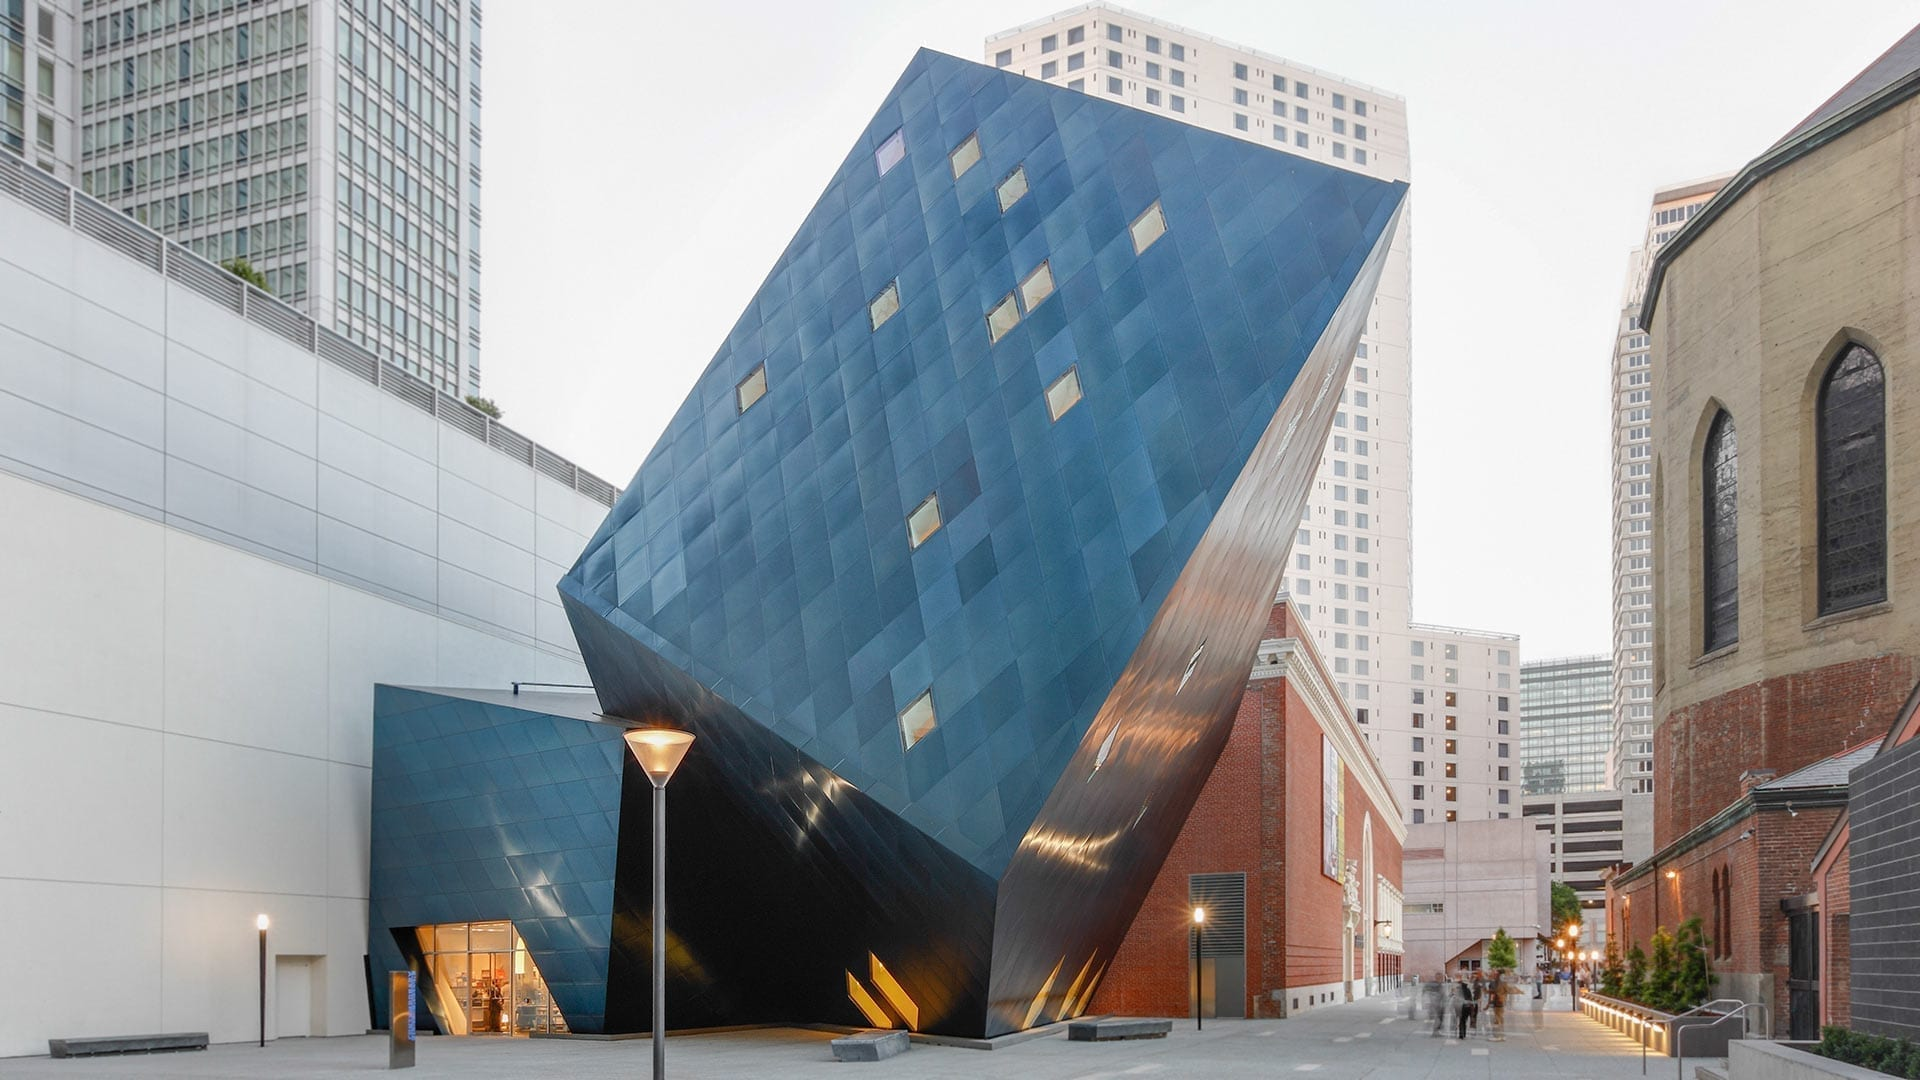 Detail of the blue panels on the Contemporary Jewish Museum.